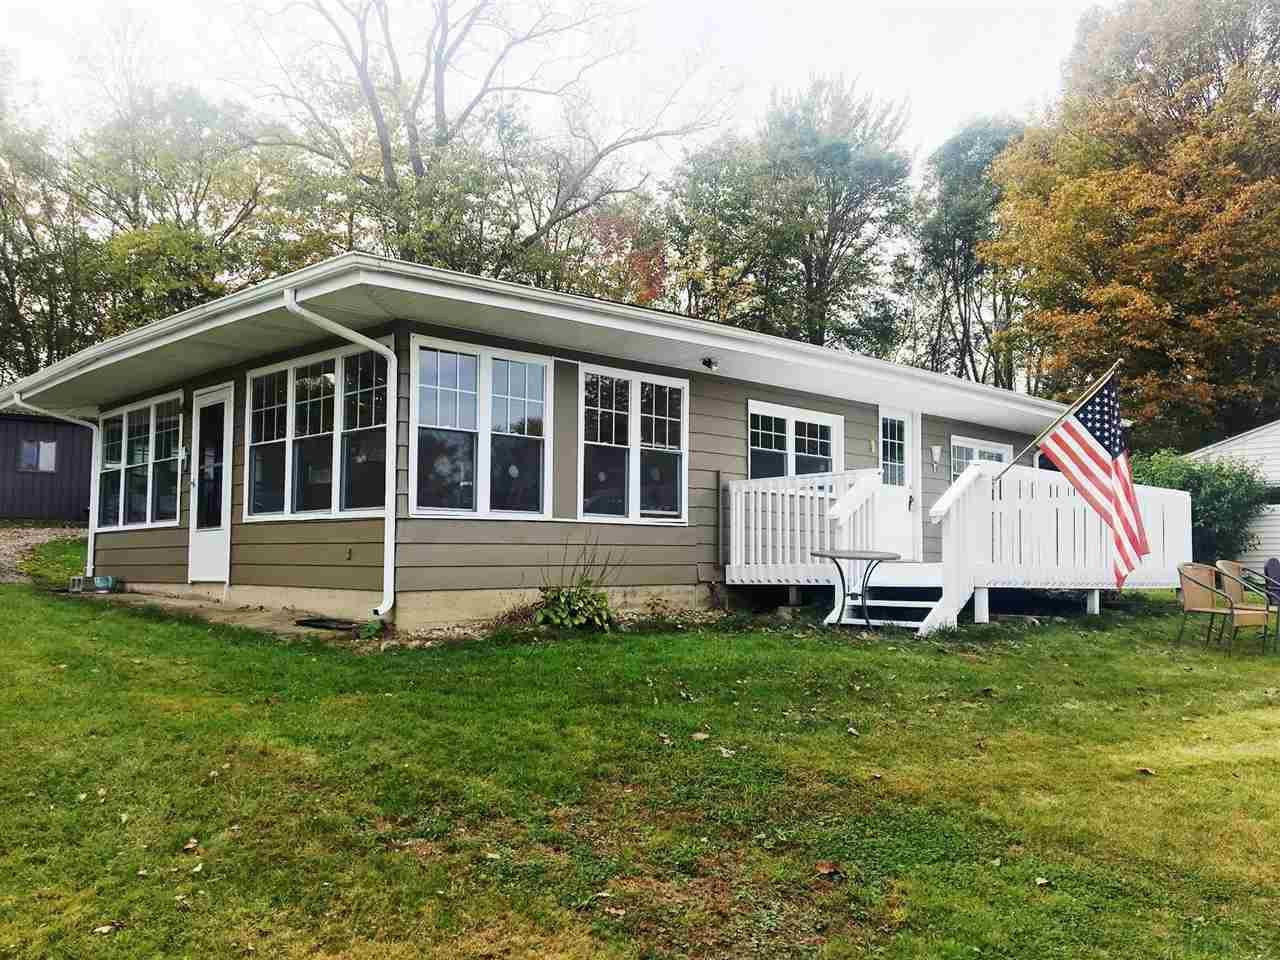 7155 S 1190 E, South Milford, IN 46786